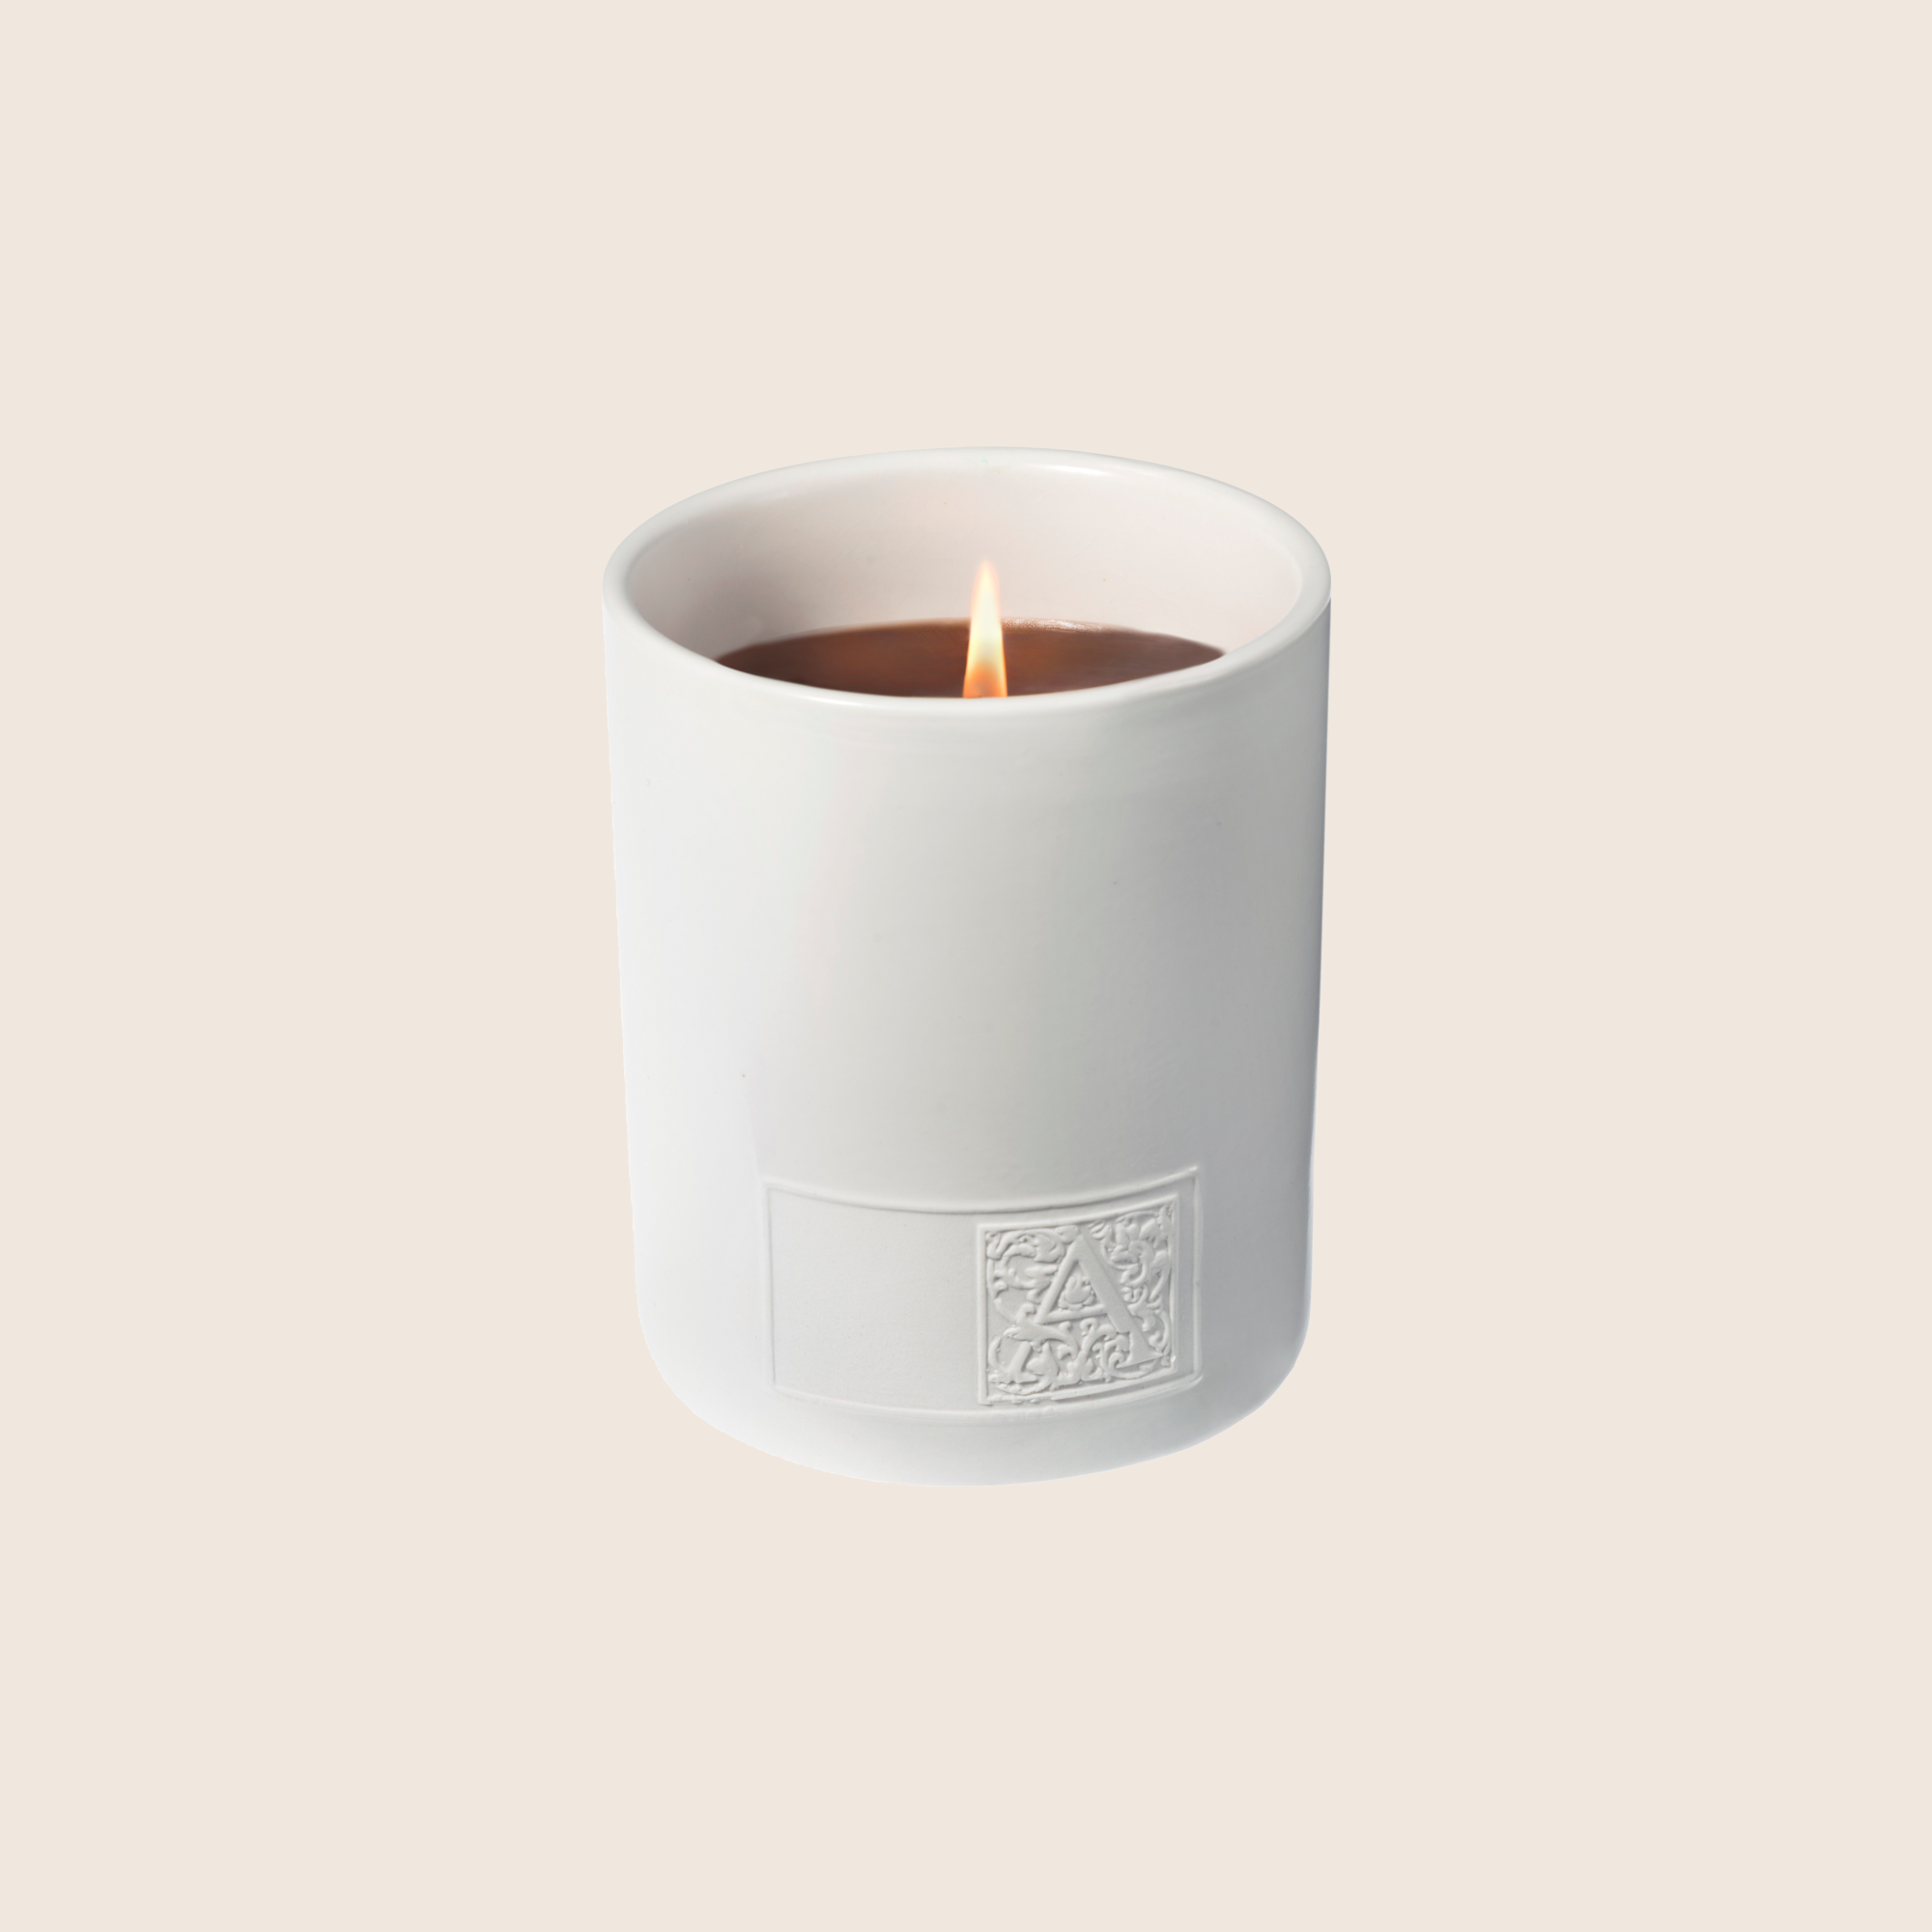 Aromatique - Cinnamon Cider Ceramic Candle